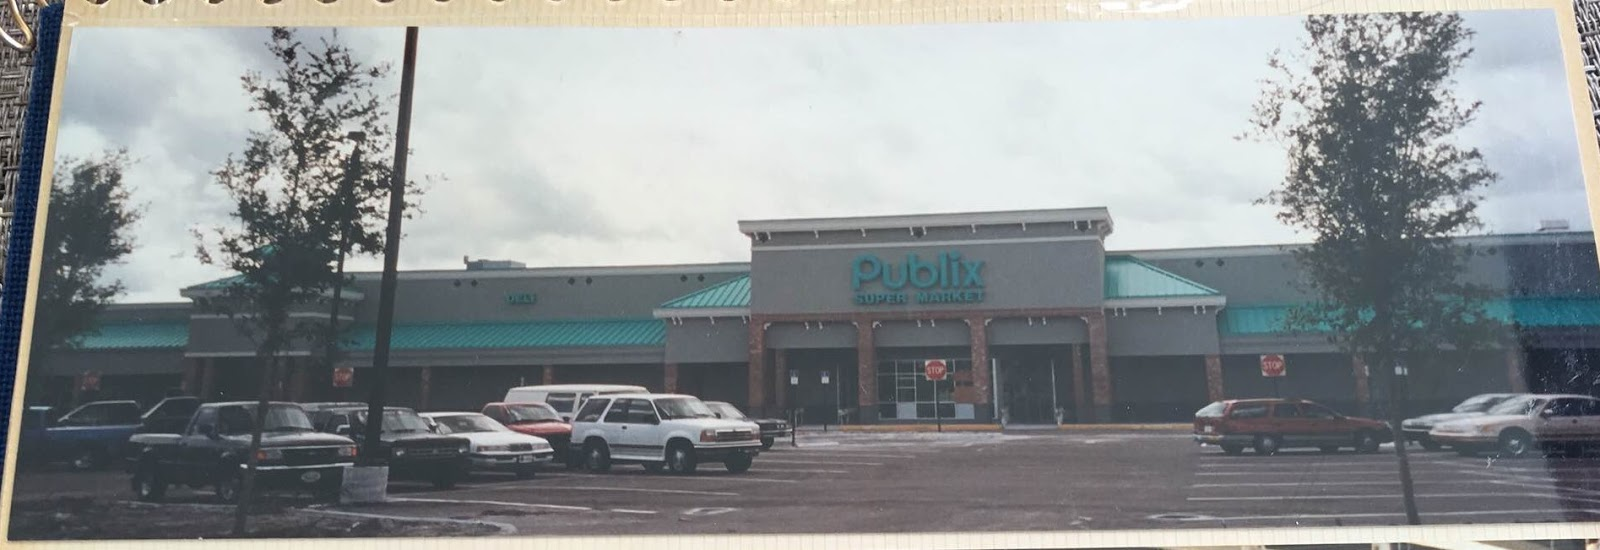 albertsons florida blog publix u0027s waviest hour and more